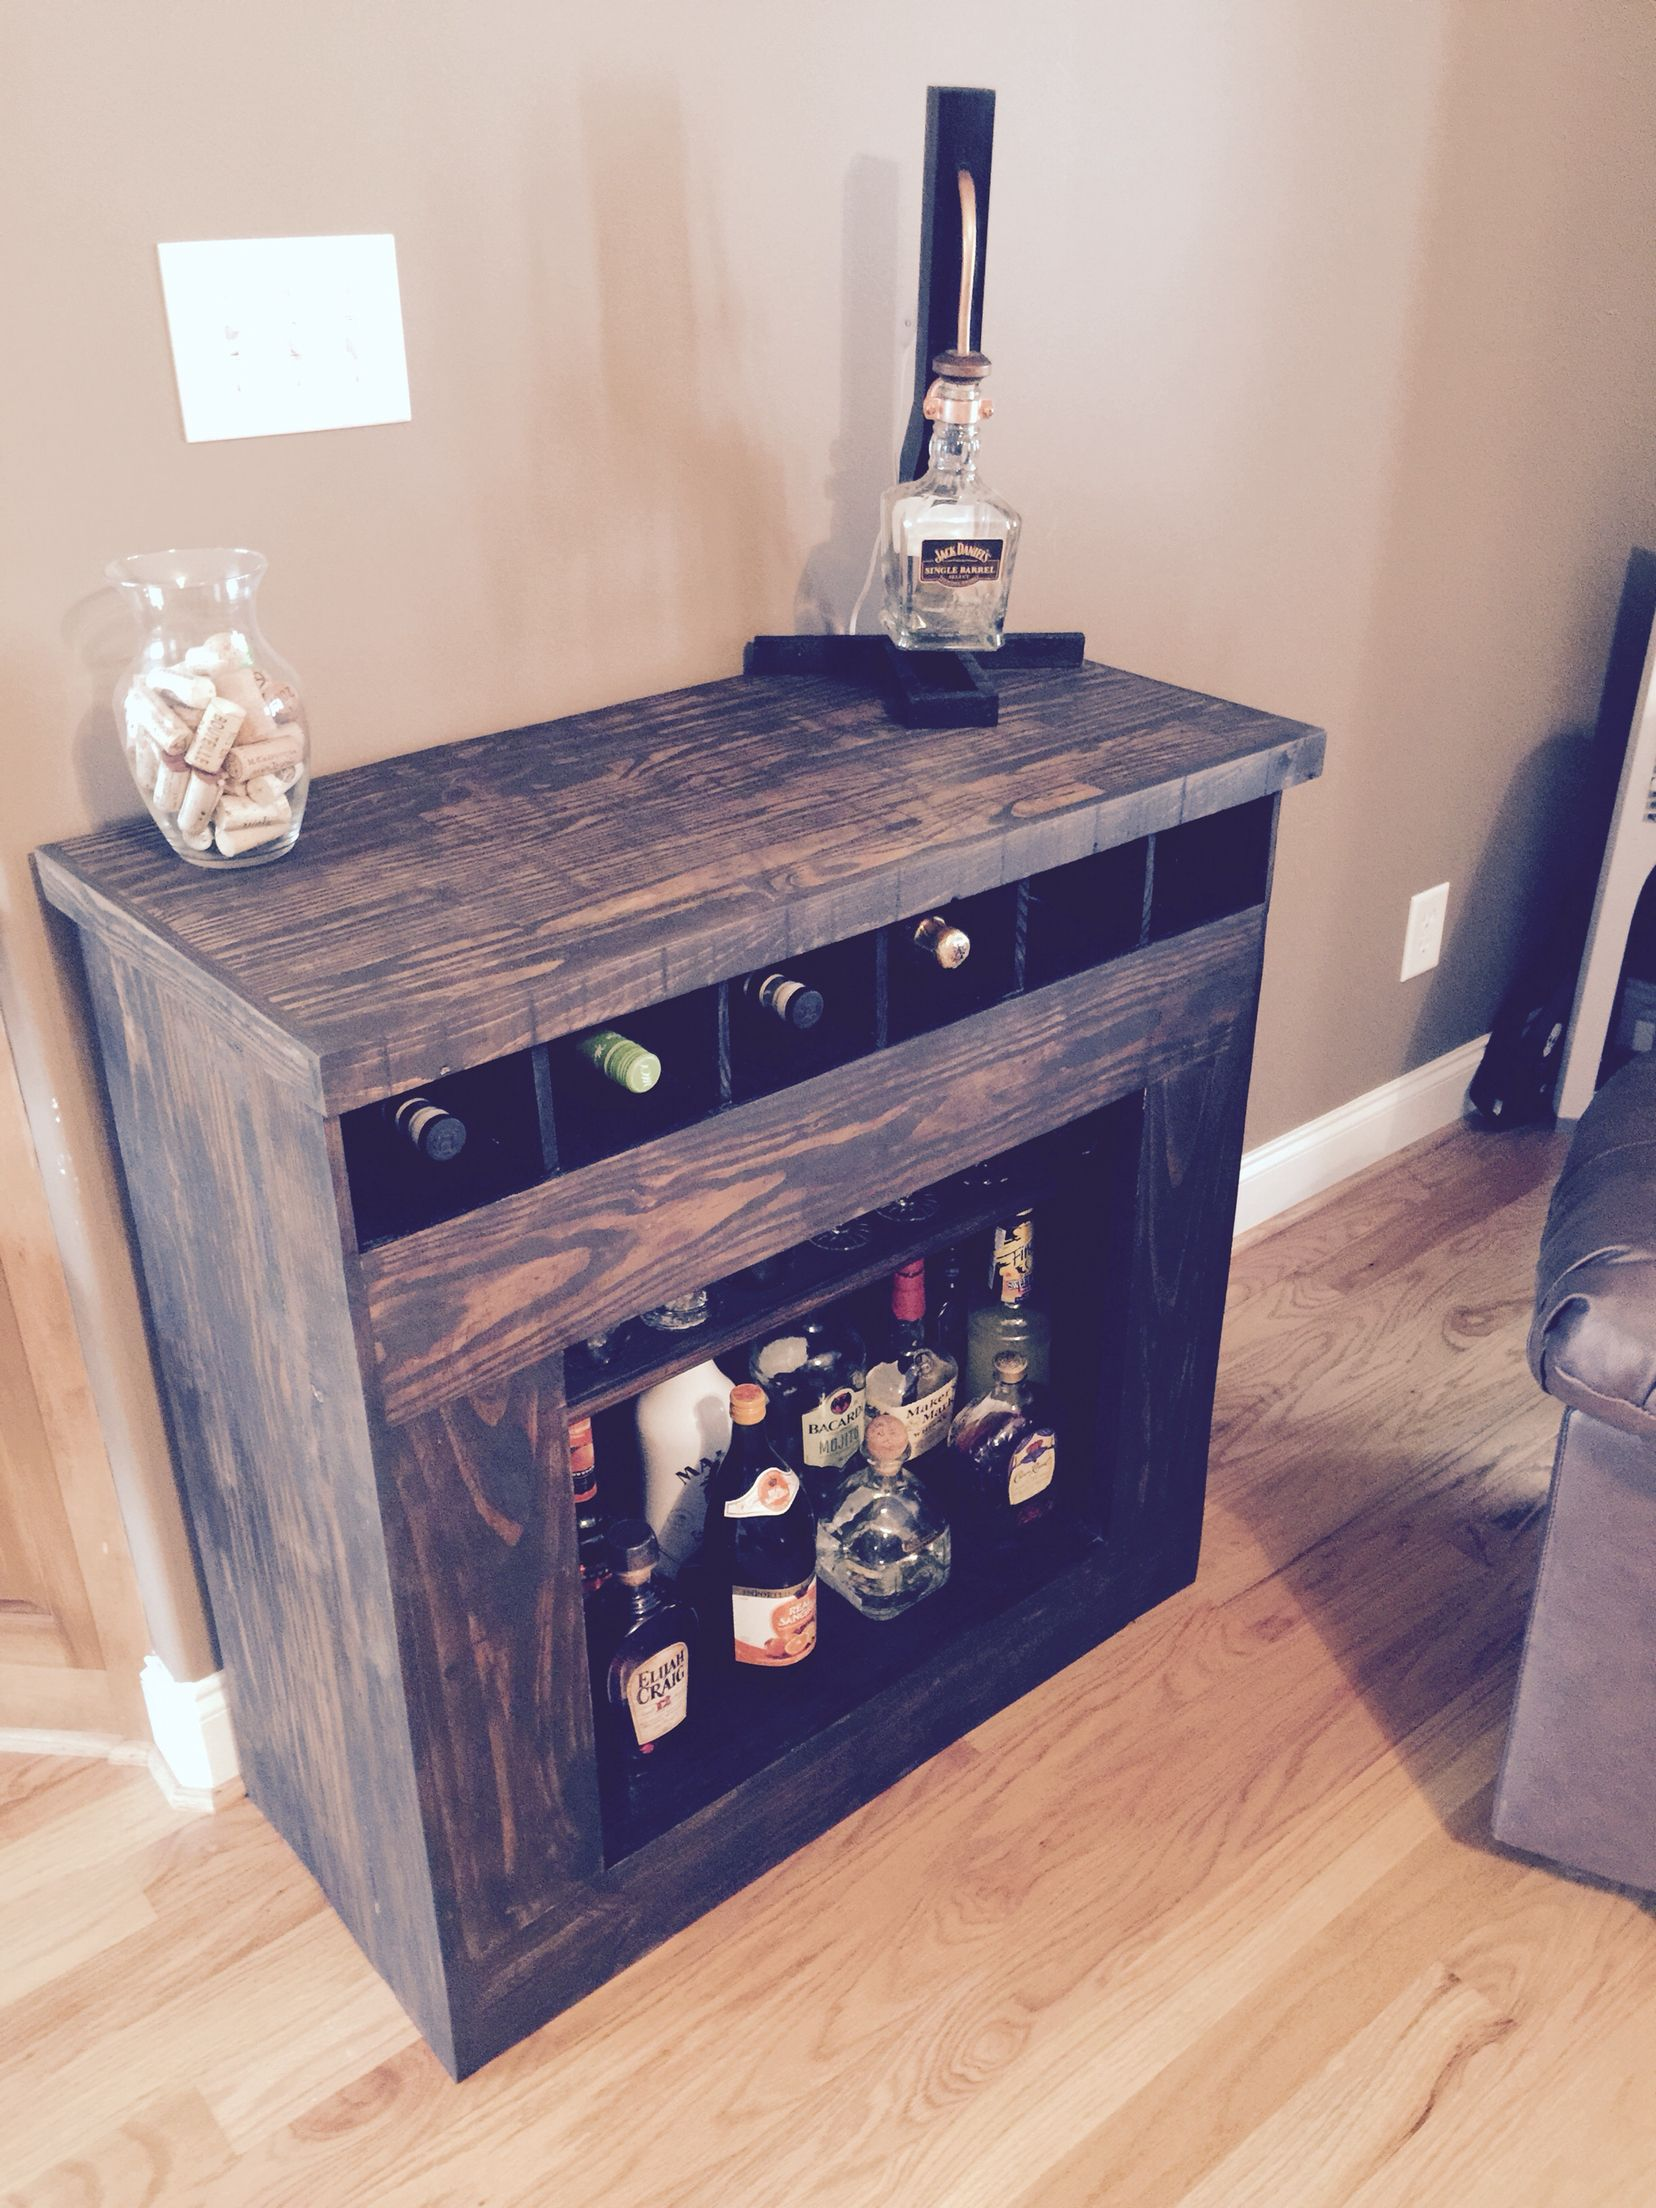 Liquor cabinet made completely out of pallet wood for Making cabinets out of pallets